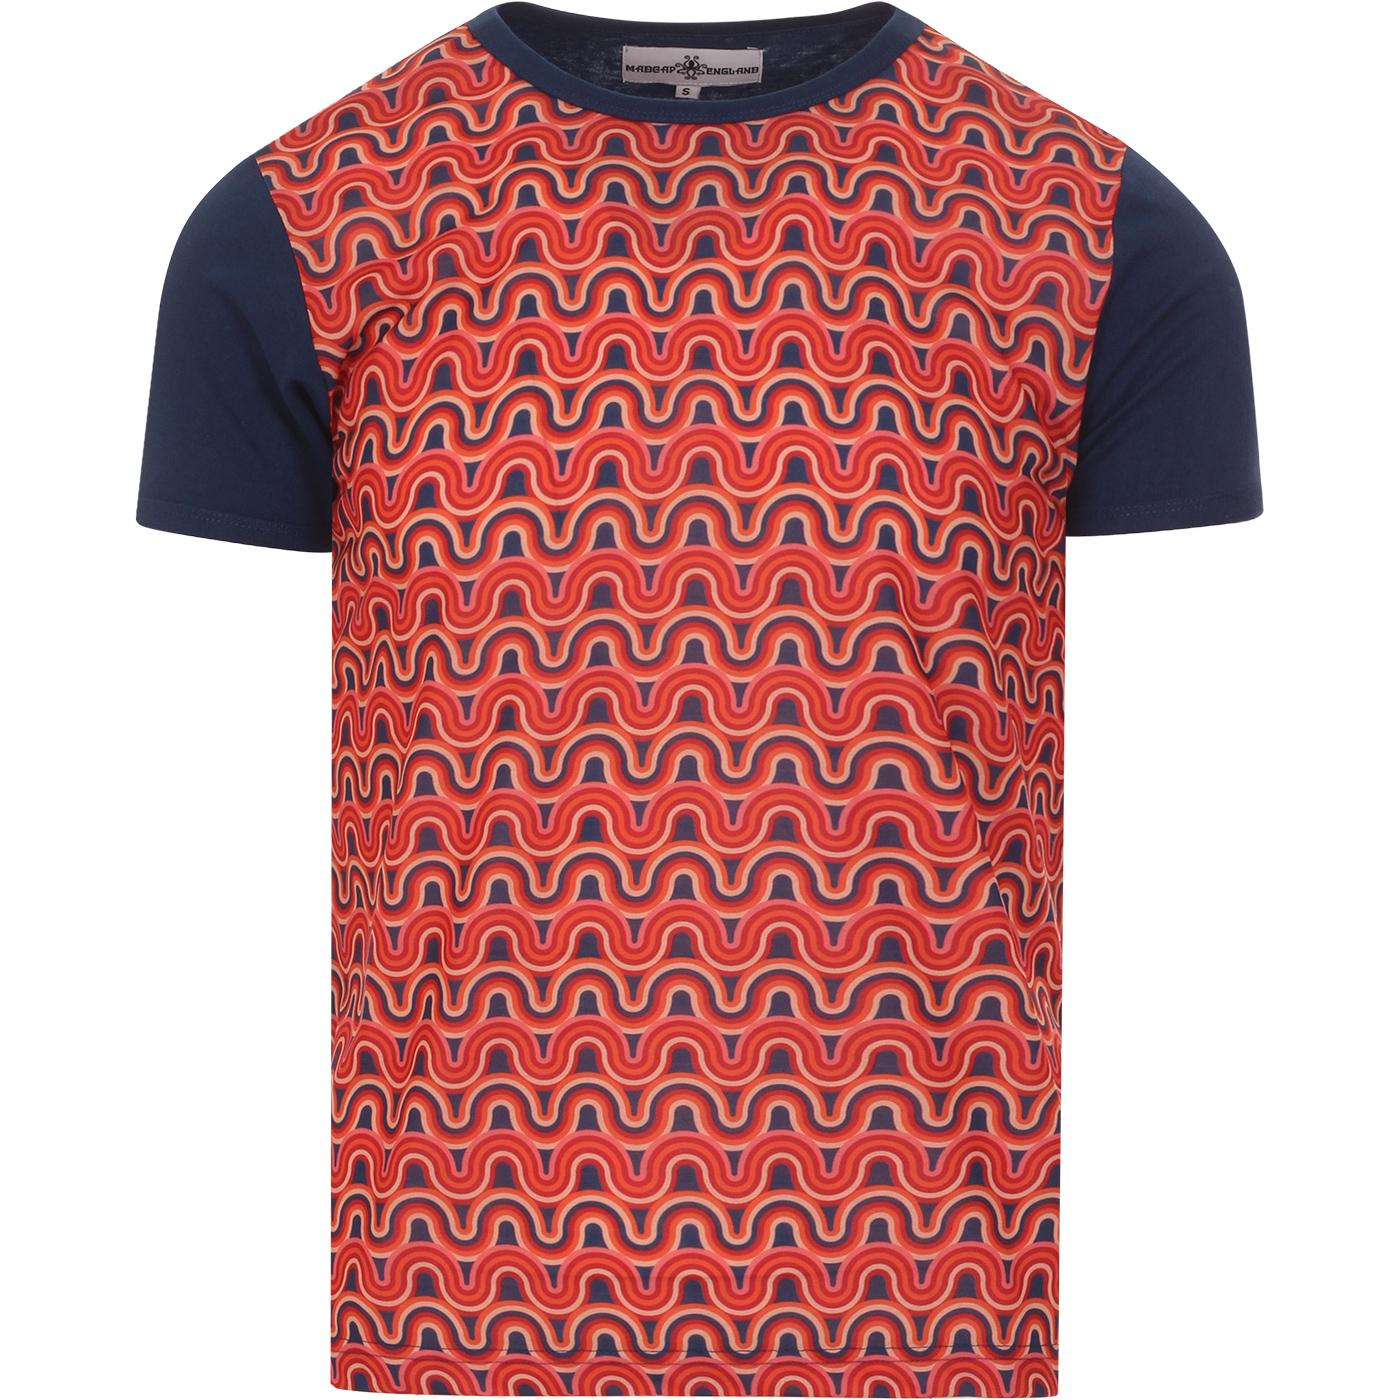 madcap england mens rainbow printed front panel ringer neck tshirt blue red